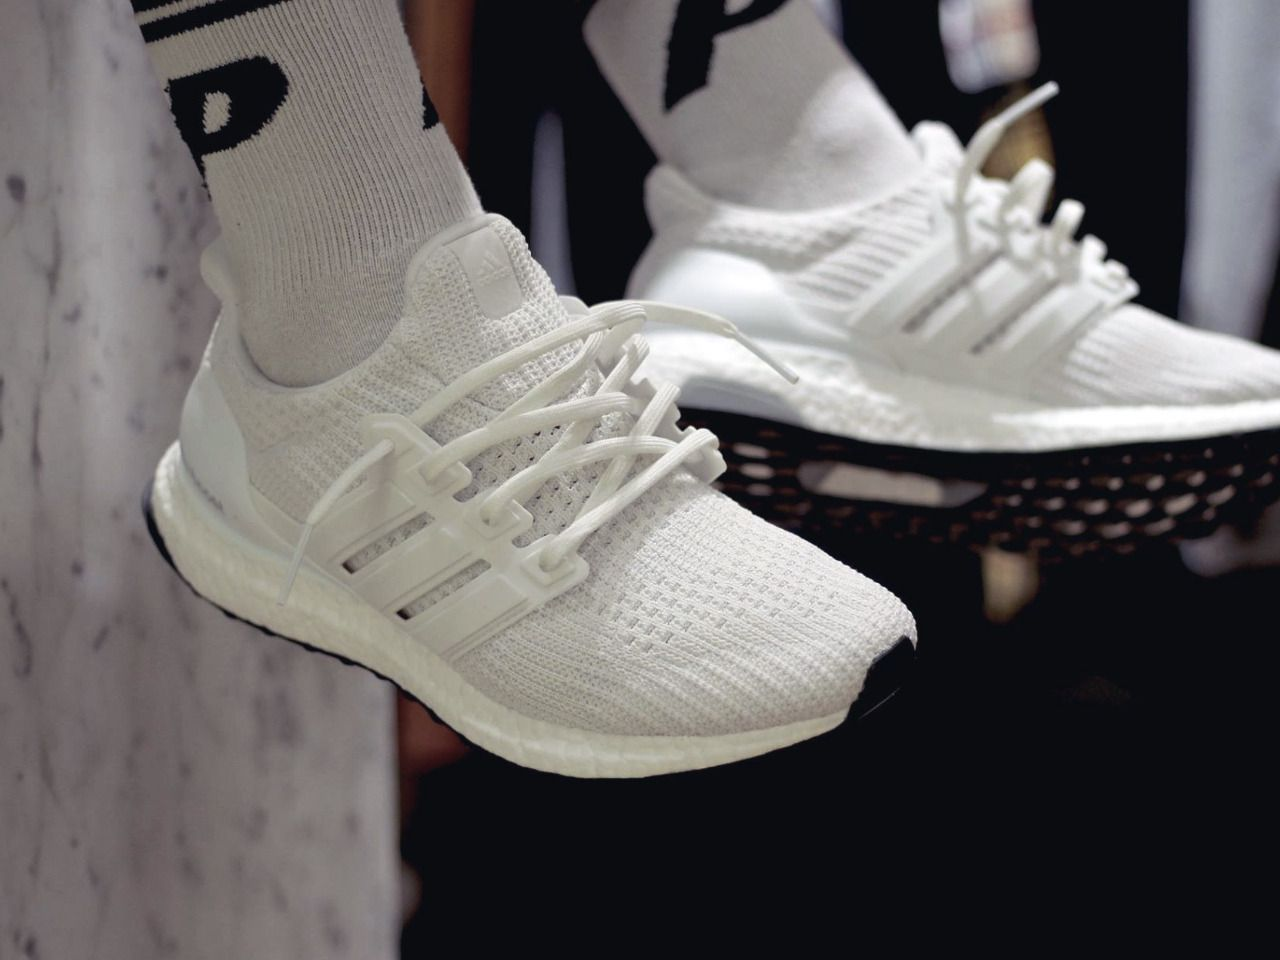 82f335d6bbc0 Adidas Ultra Boost 4.0 - Triple White - 2017 by Cerje Jack-l Buy  viaGlamour